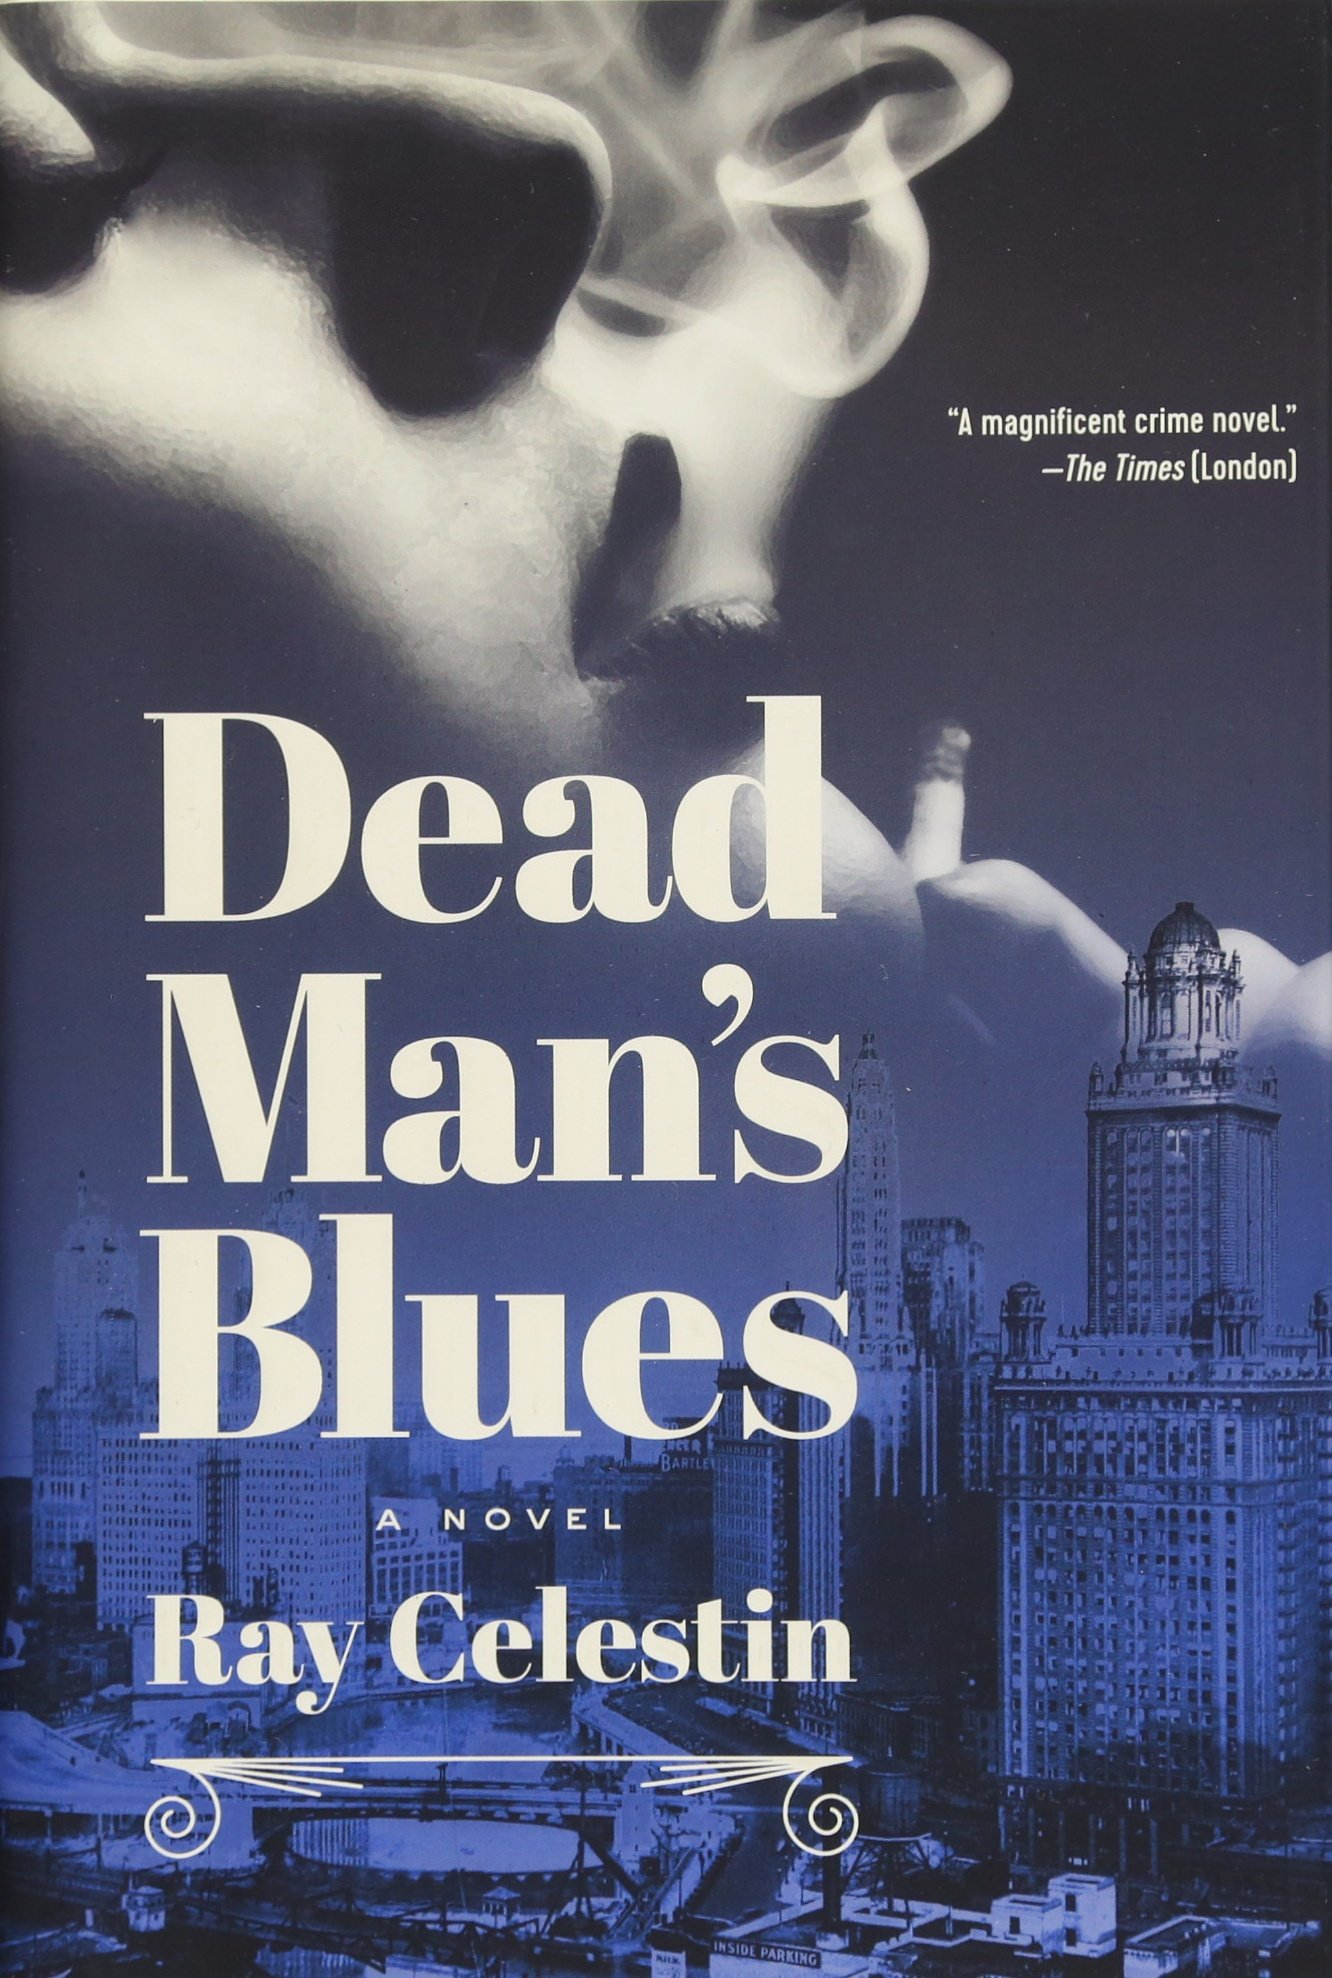 Download Dead Man's Blues: A Novel PDF